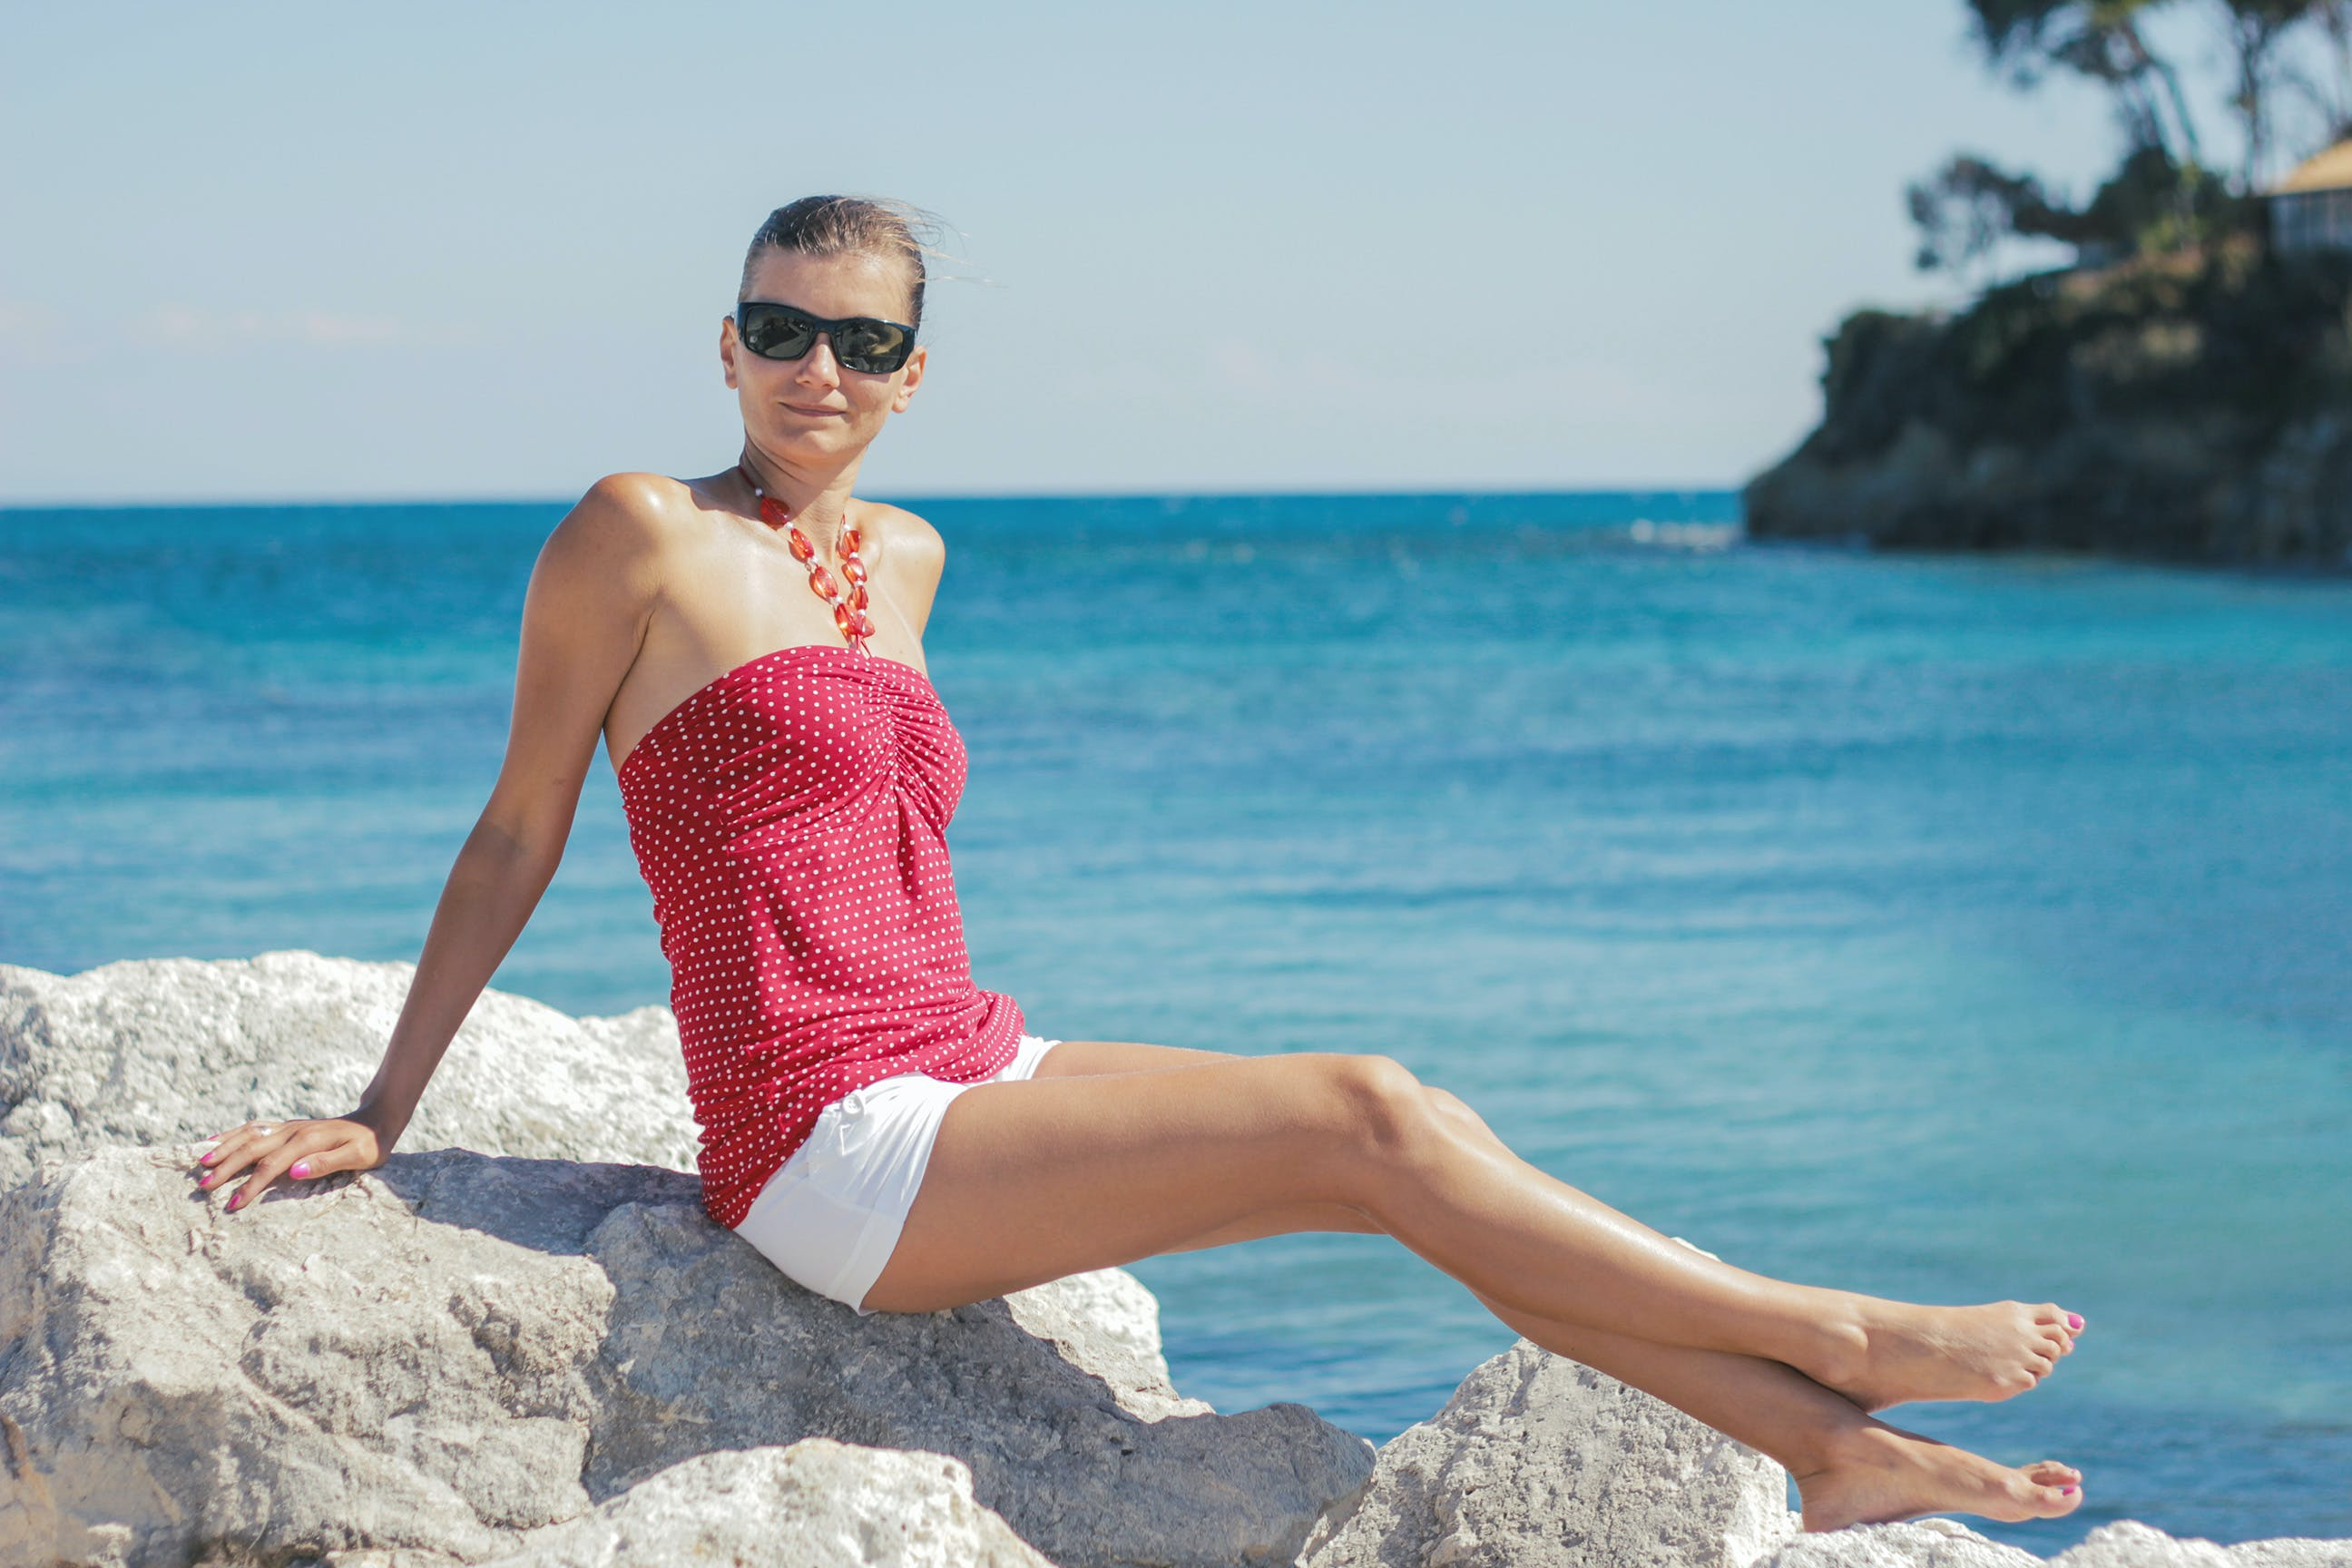 Woman Wearing Pink Tube Top Sitting on Rock \u00b7 Free Stock Photo